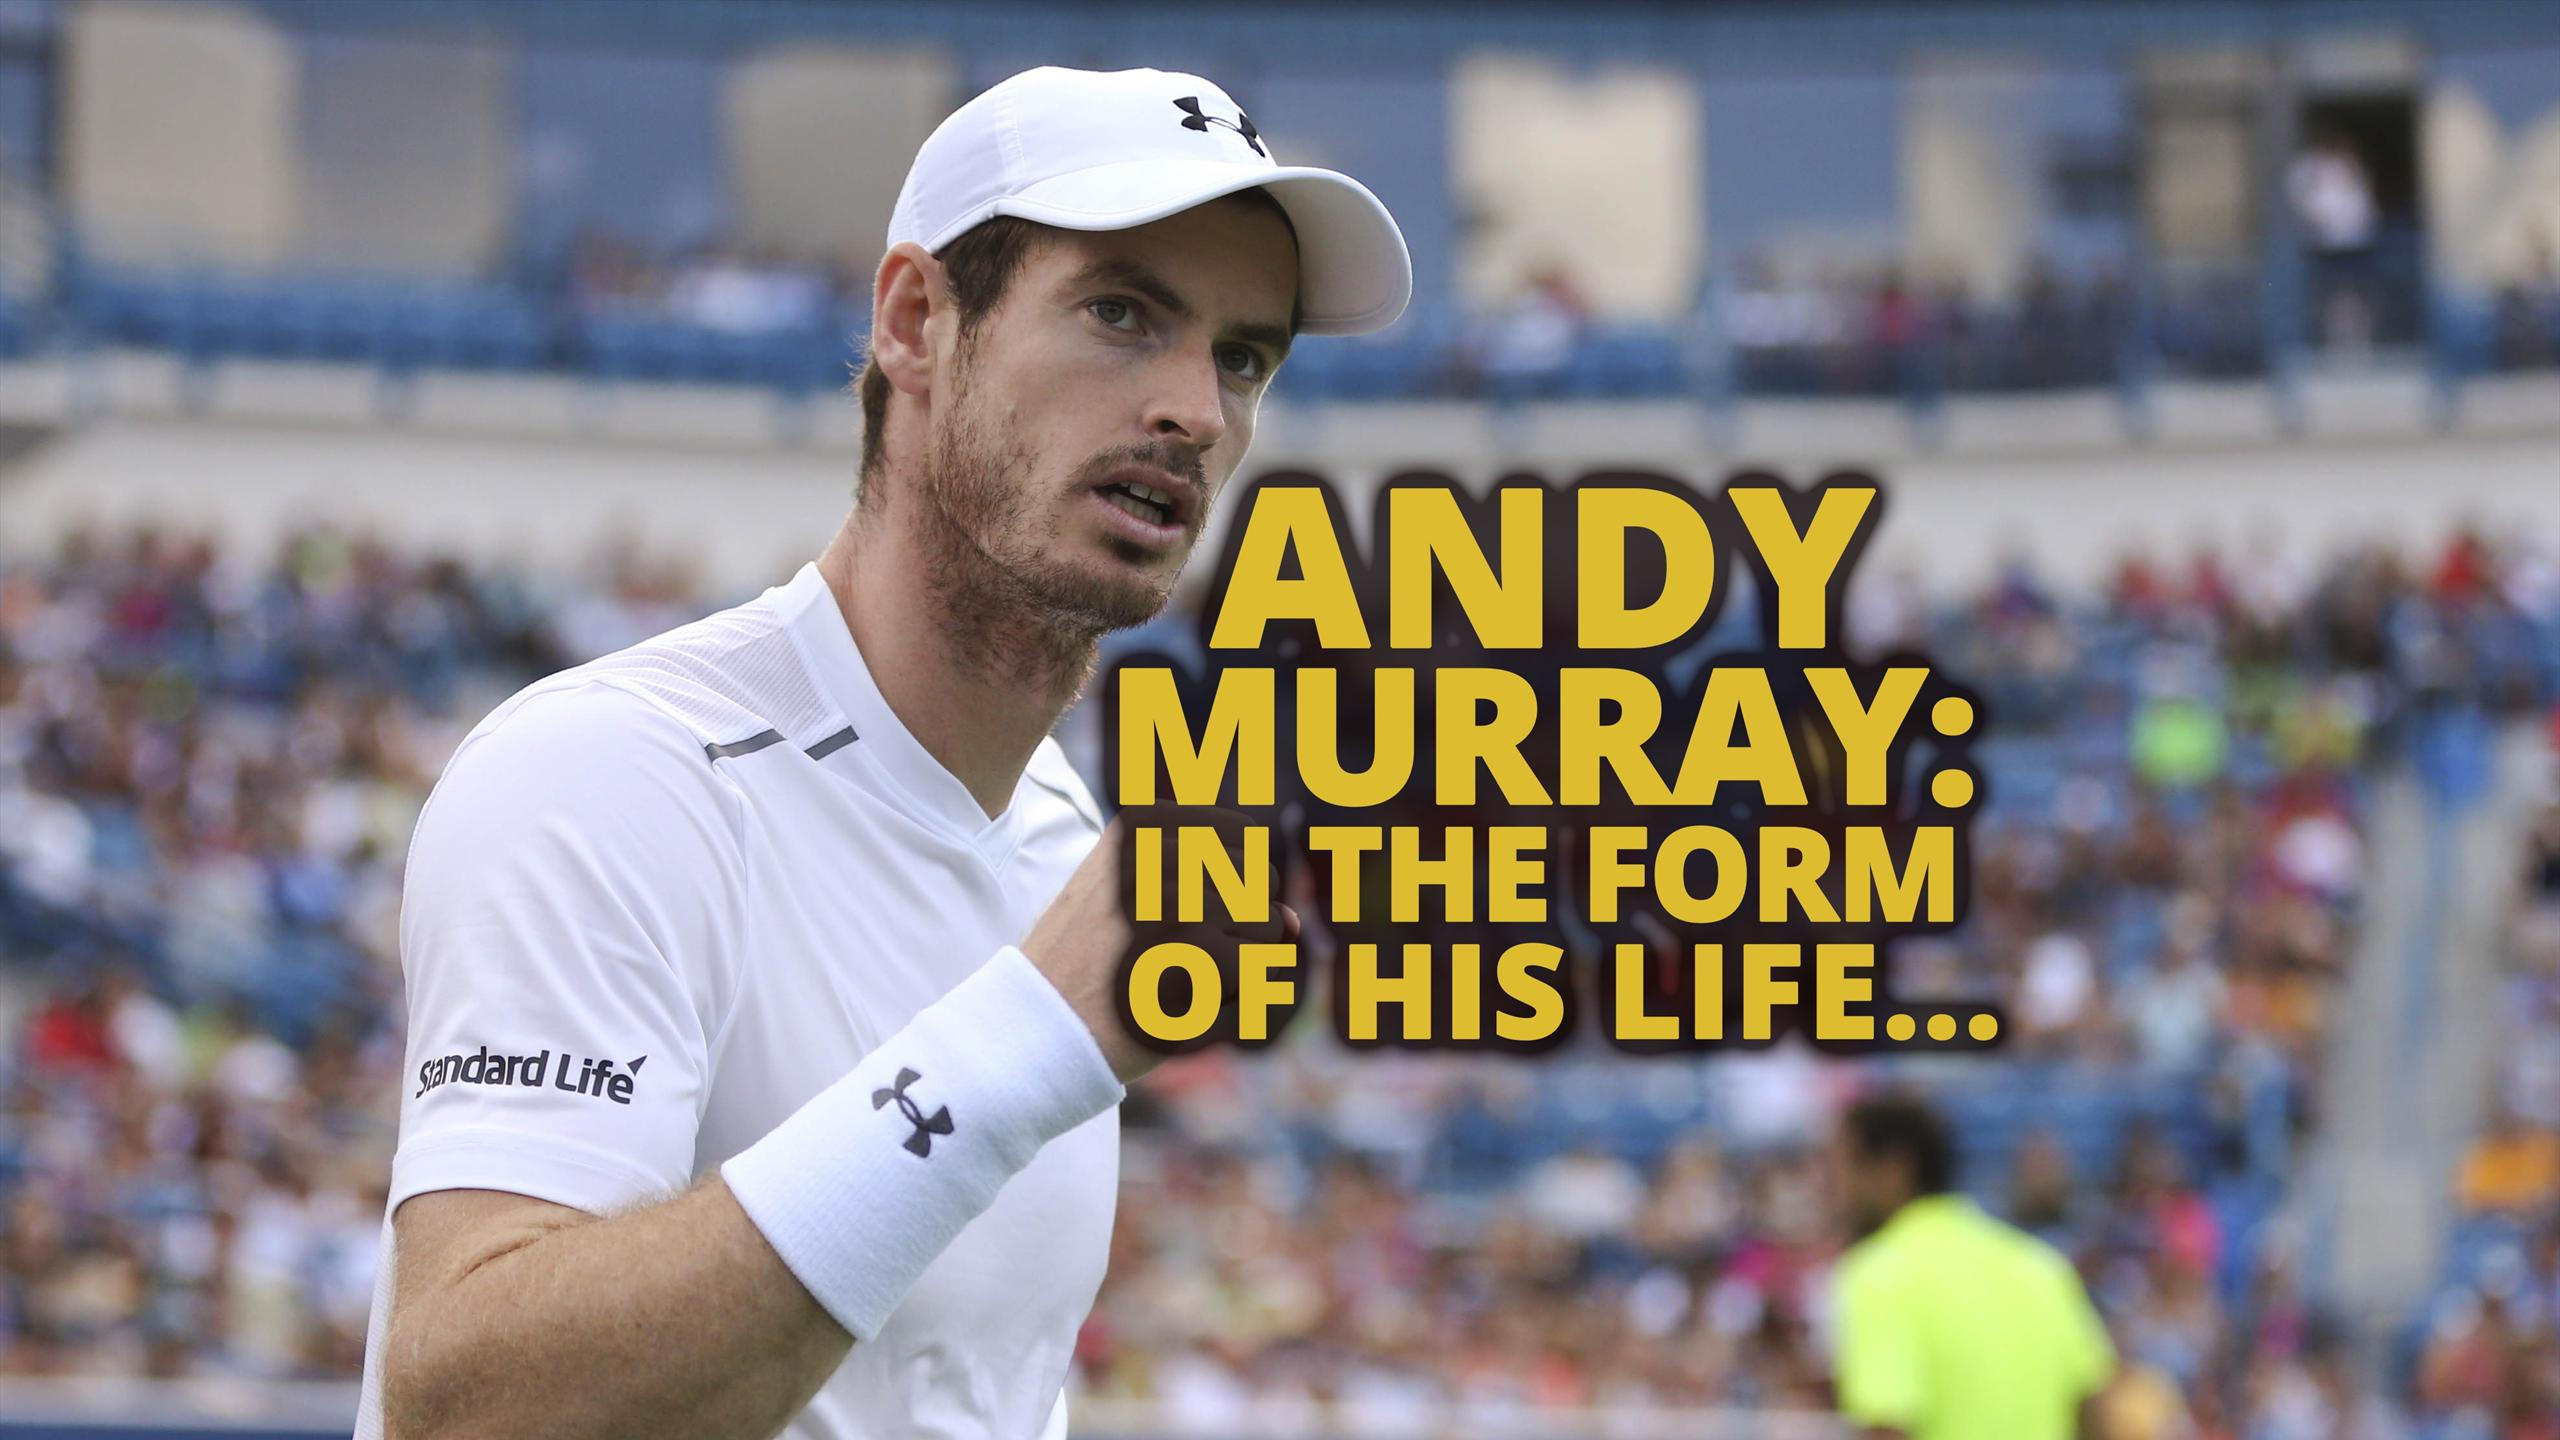 In the form of his life - Andy Murray